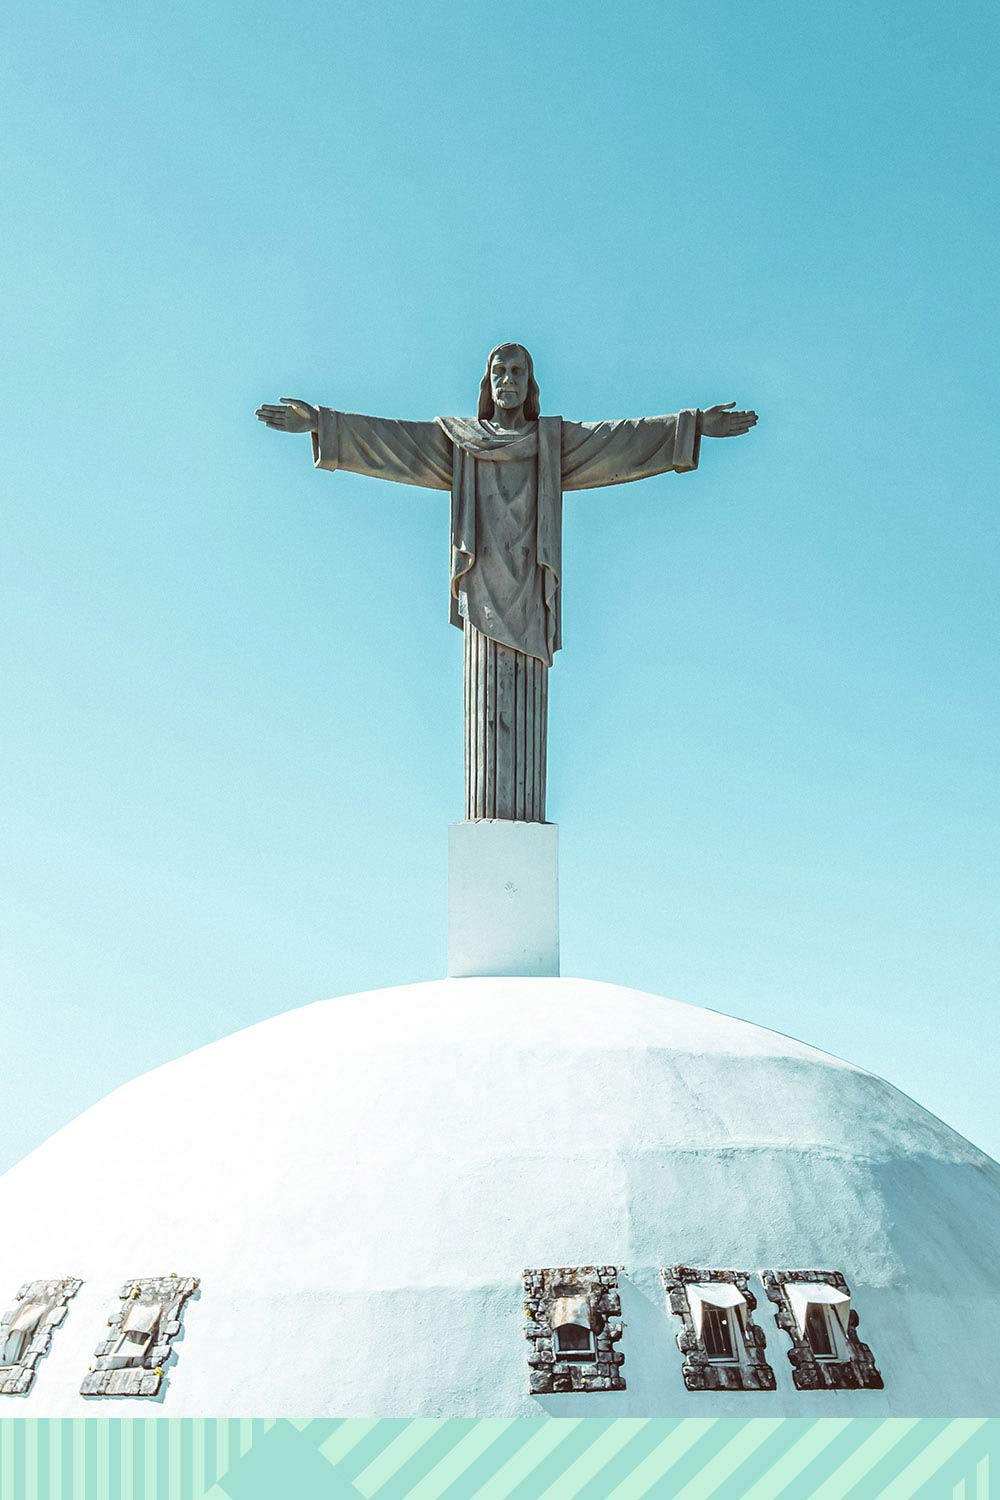 An image of Jesus atop a dome church